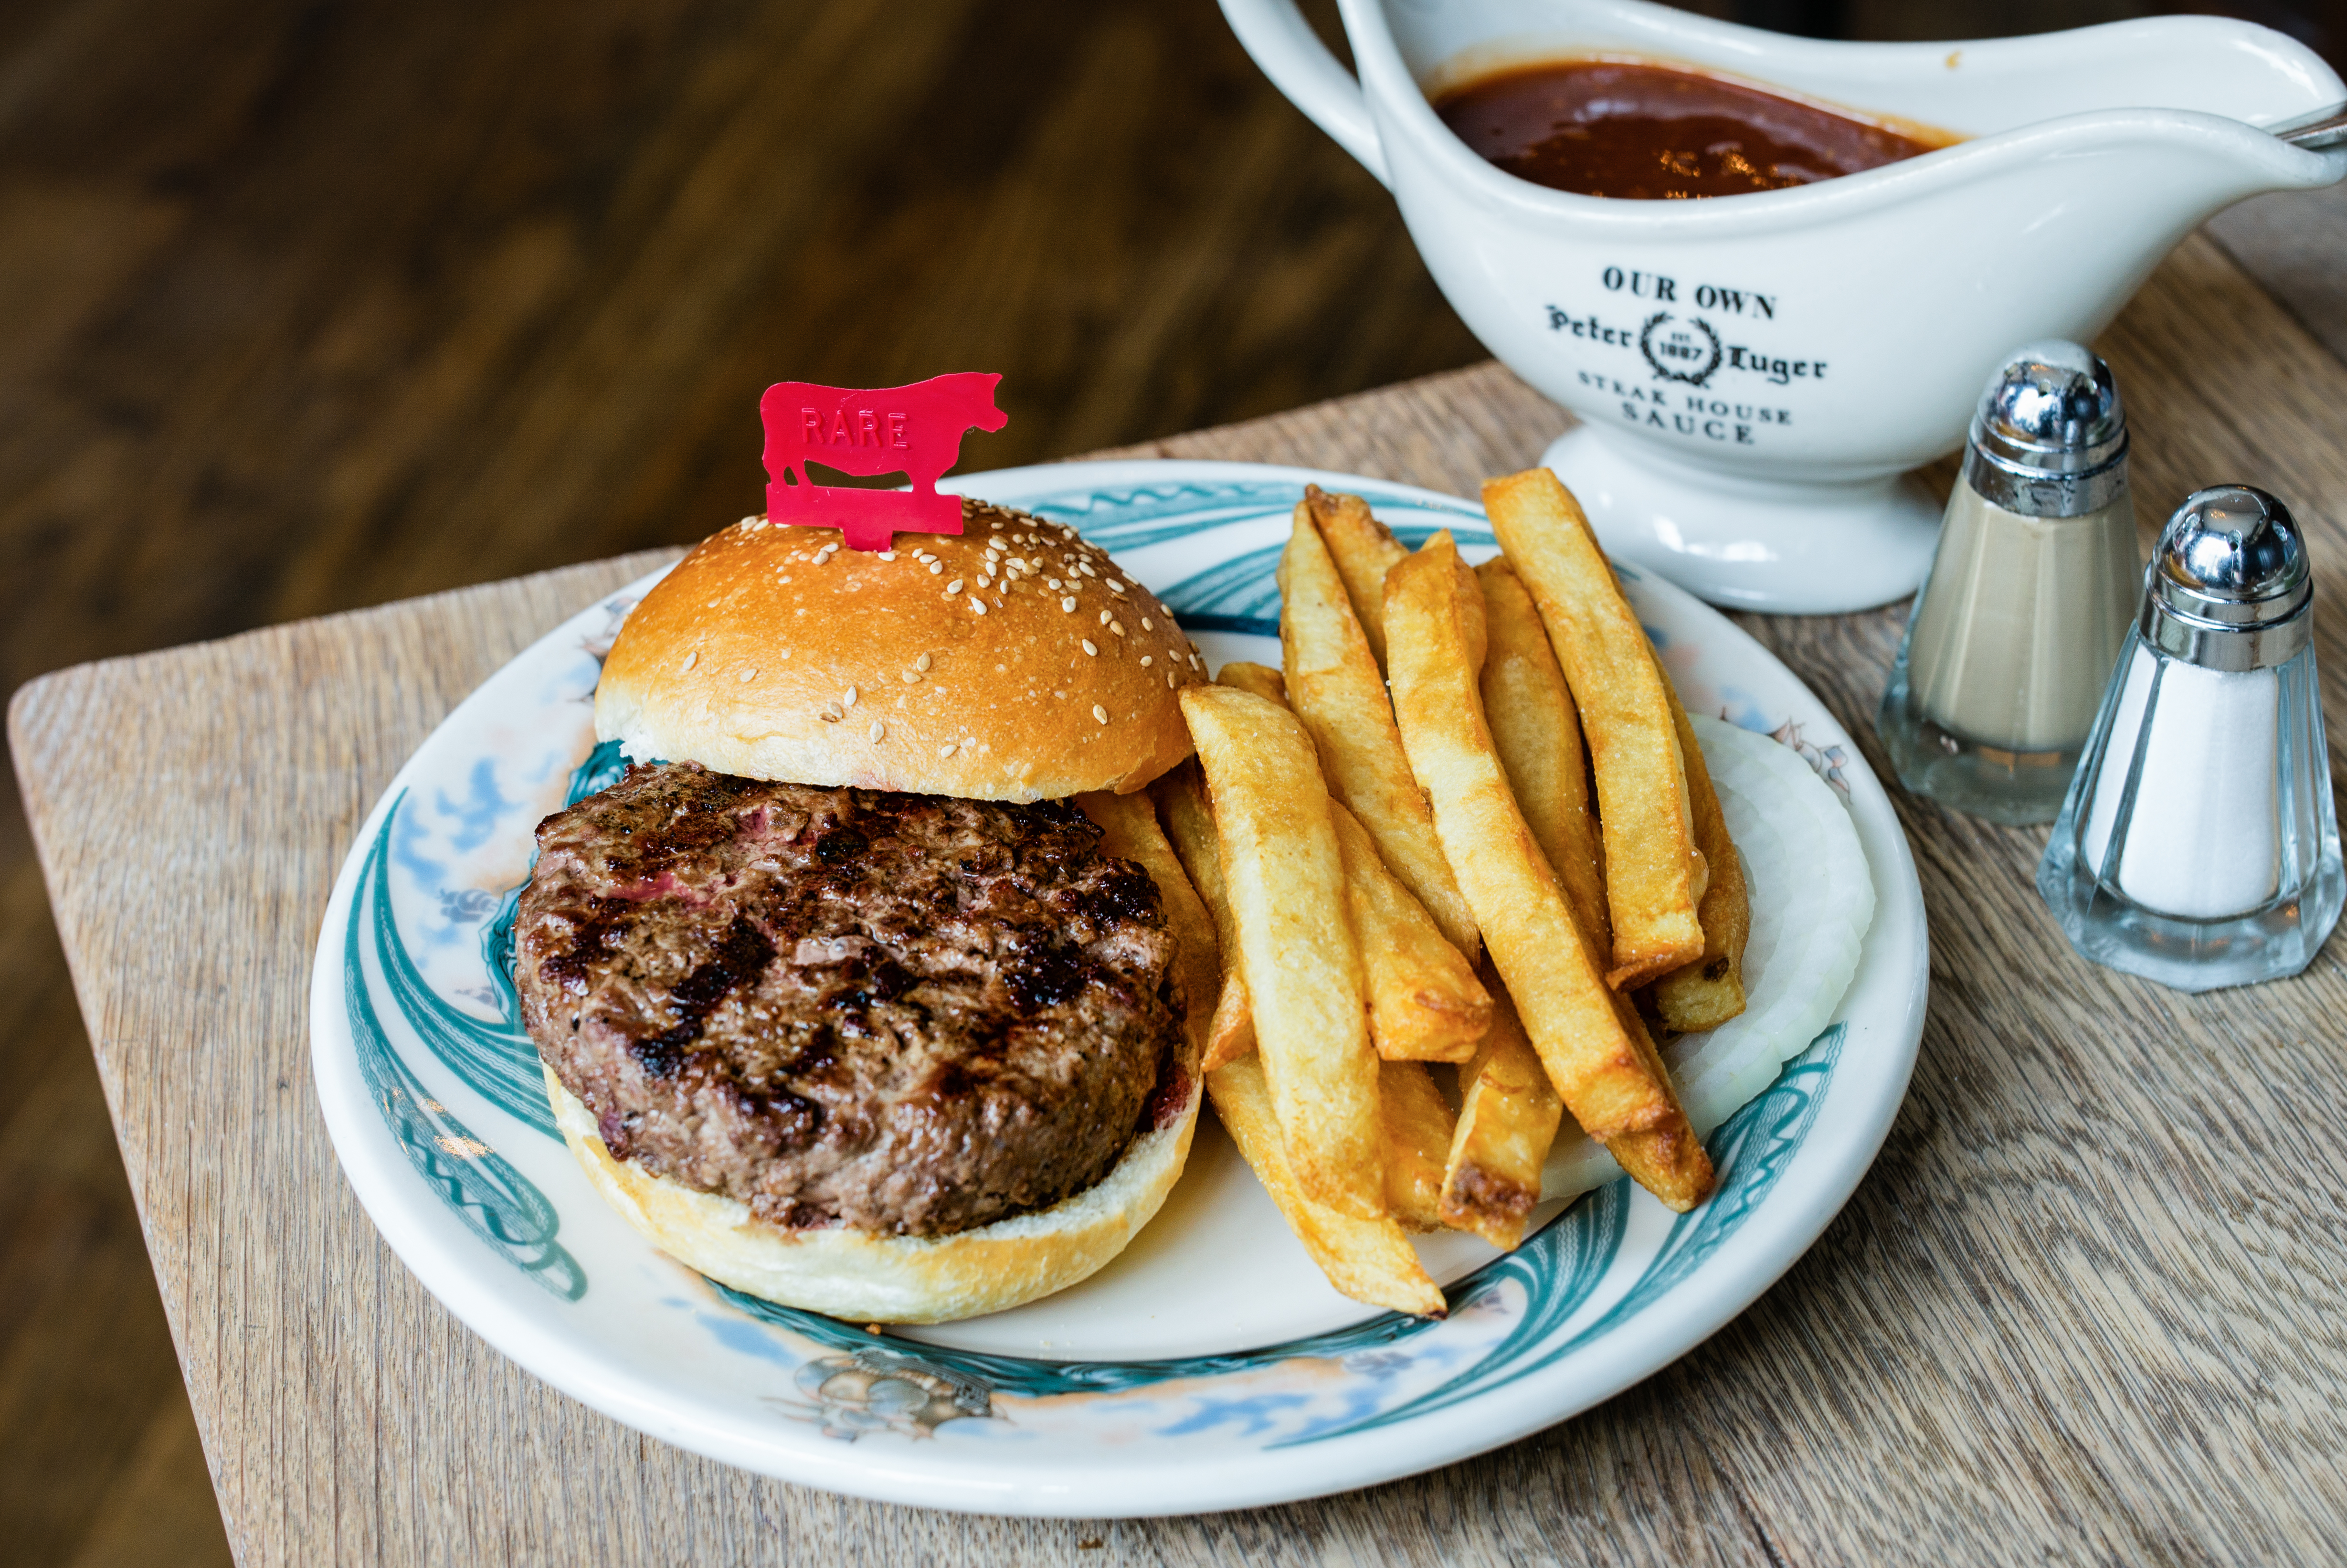 Peter Luger's hamburger with fries, on a white plate with blue markings